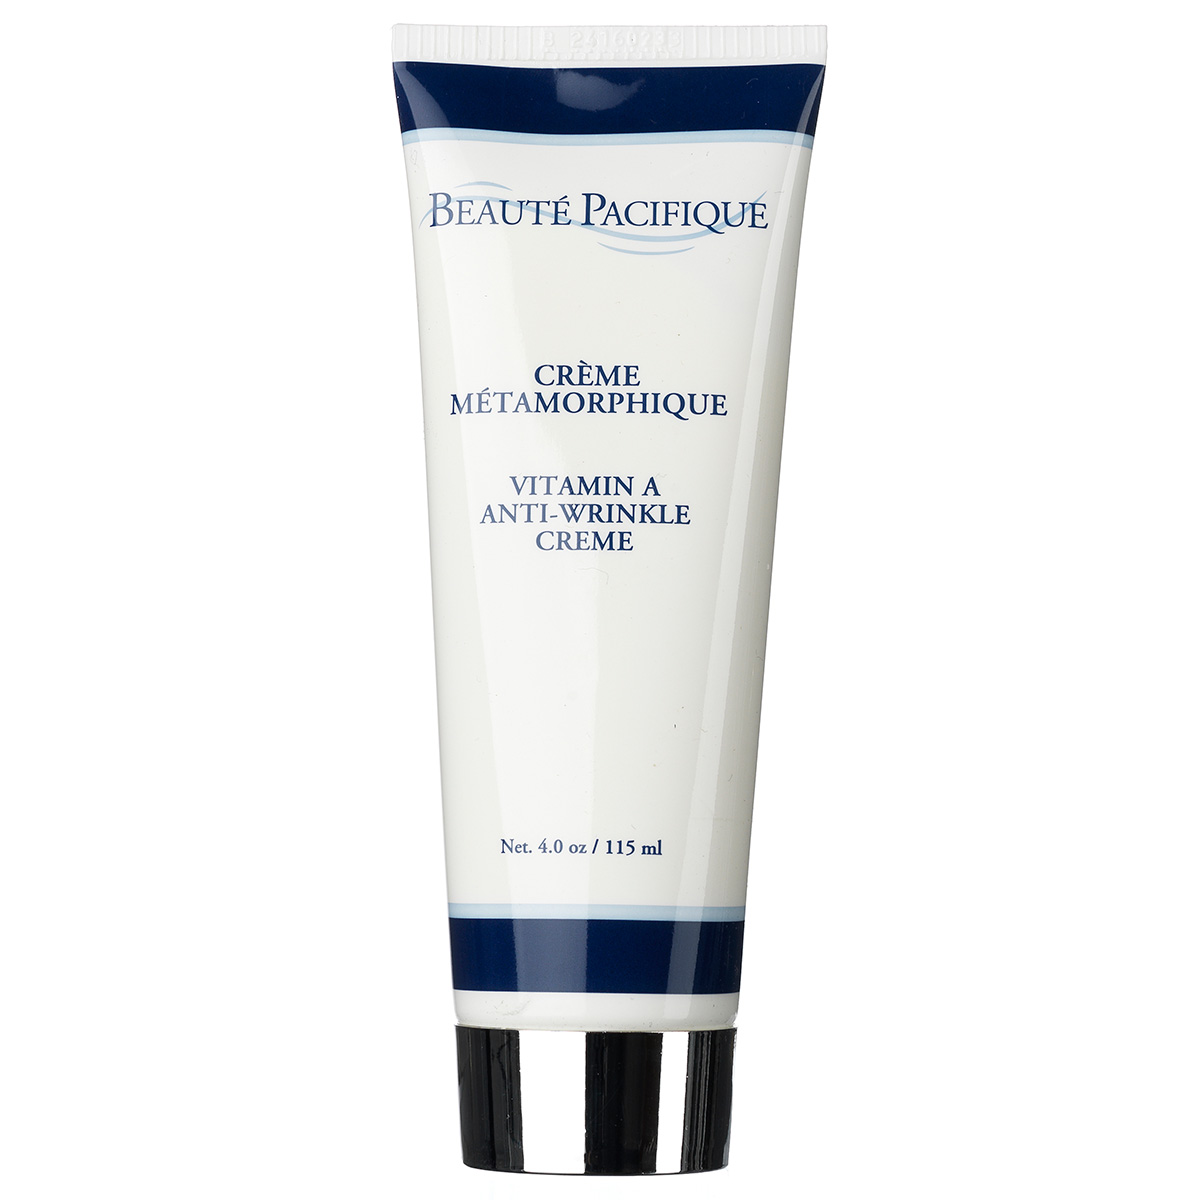 Beauté Pacifique A-vitamin creme - 115 ml Effektiv og plejende anti-age natcreme til normal hud